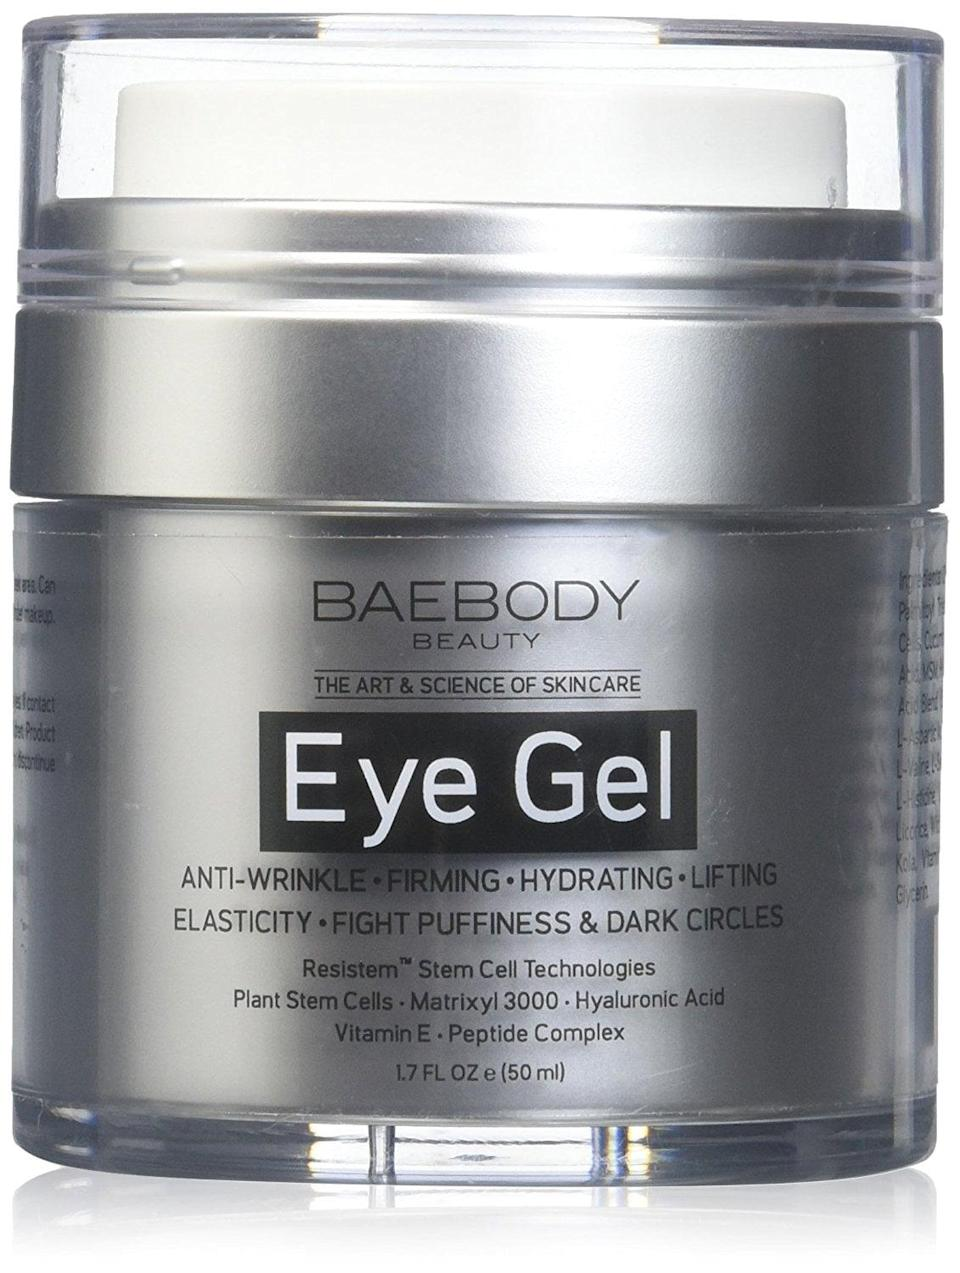 <p>Almost 10,000 people have reviewed this <span>Baebody Eye Gel</span> ($25) and 67 percent of them give it five stars. The ingredients include hyaluronic acid, which hydrates and plumps skin; Matrixyl 3000, which firms skin; and plant stem cells to strengthen and protect against damage.</p>